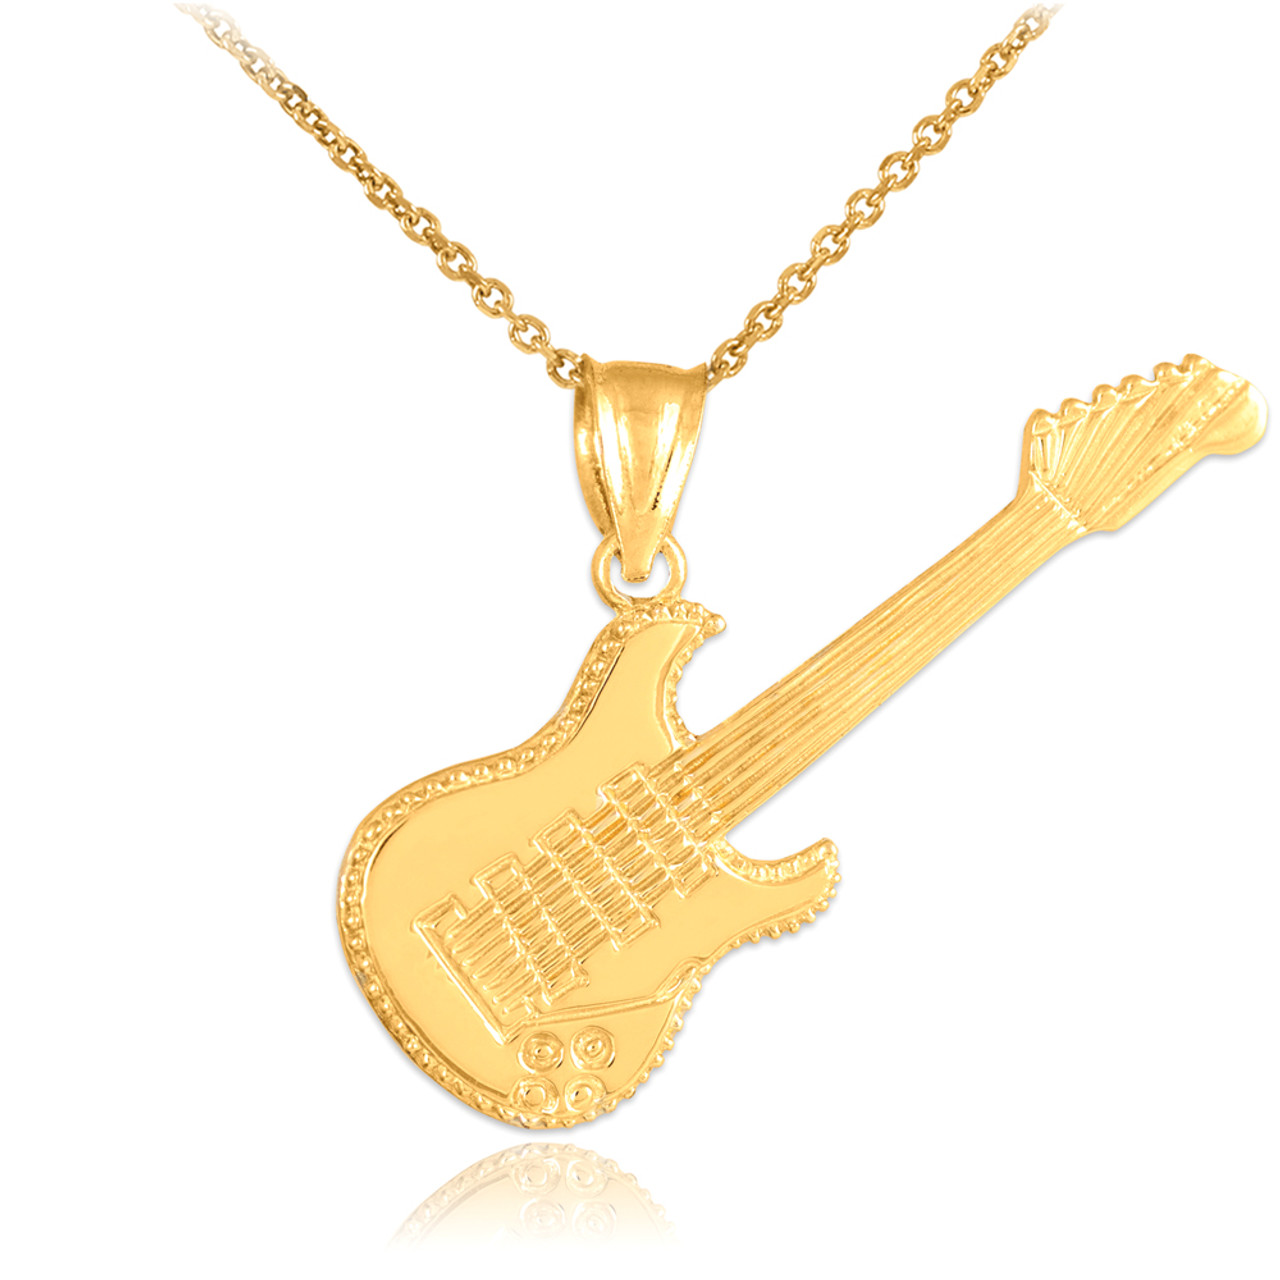 necklace don red bona es t forget fide this guitar products